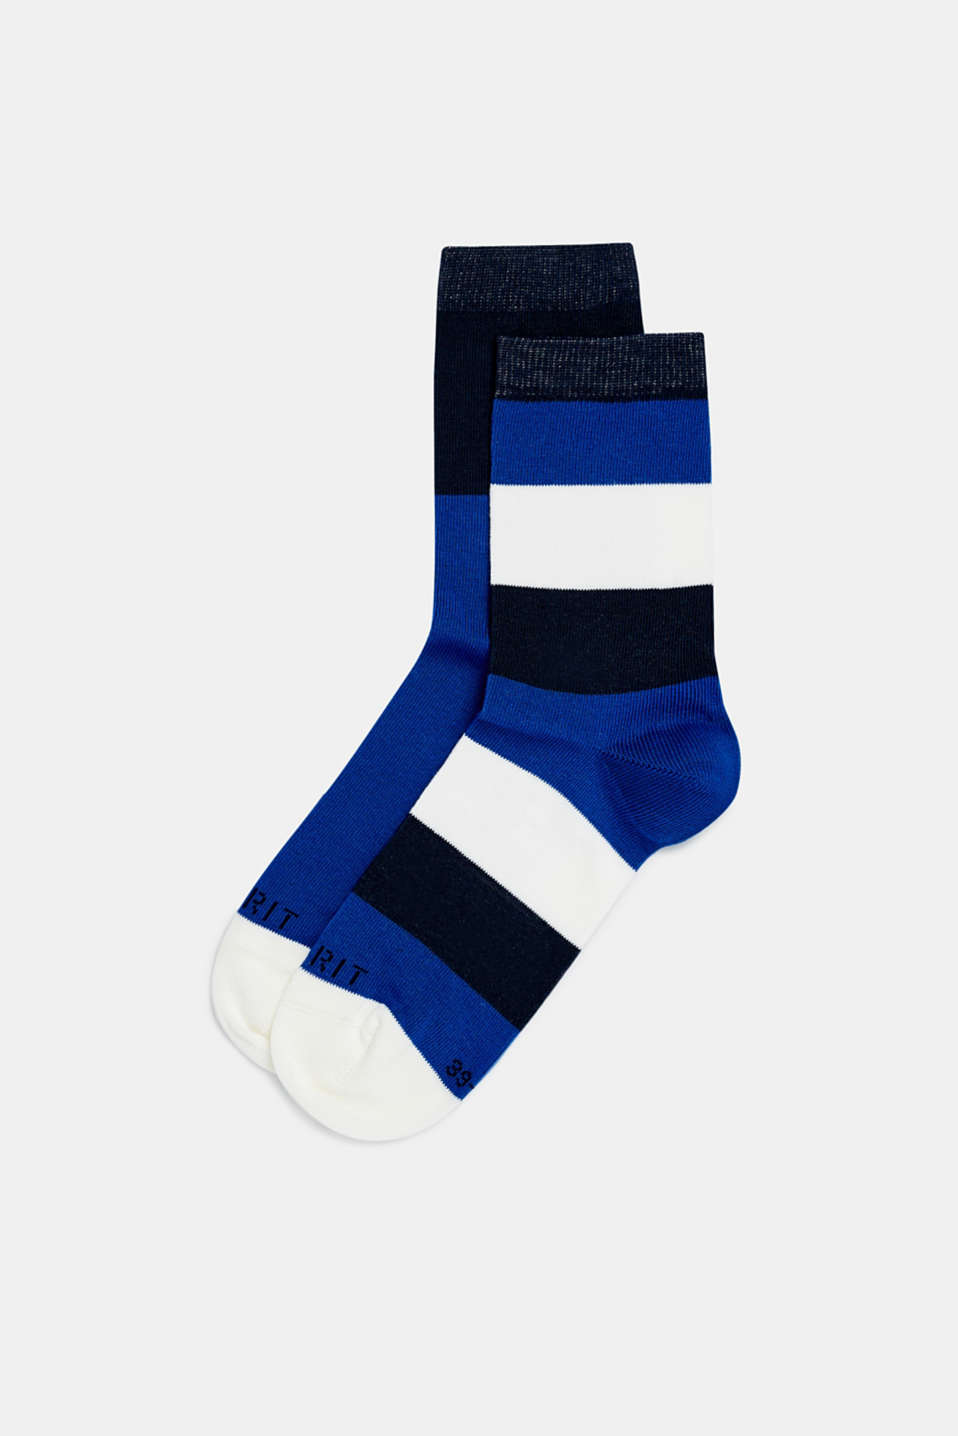 Esprit - 2-pack of socks with block stripes